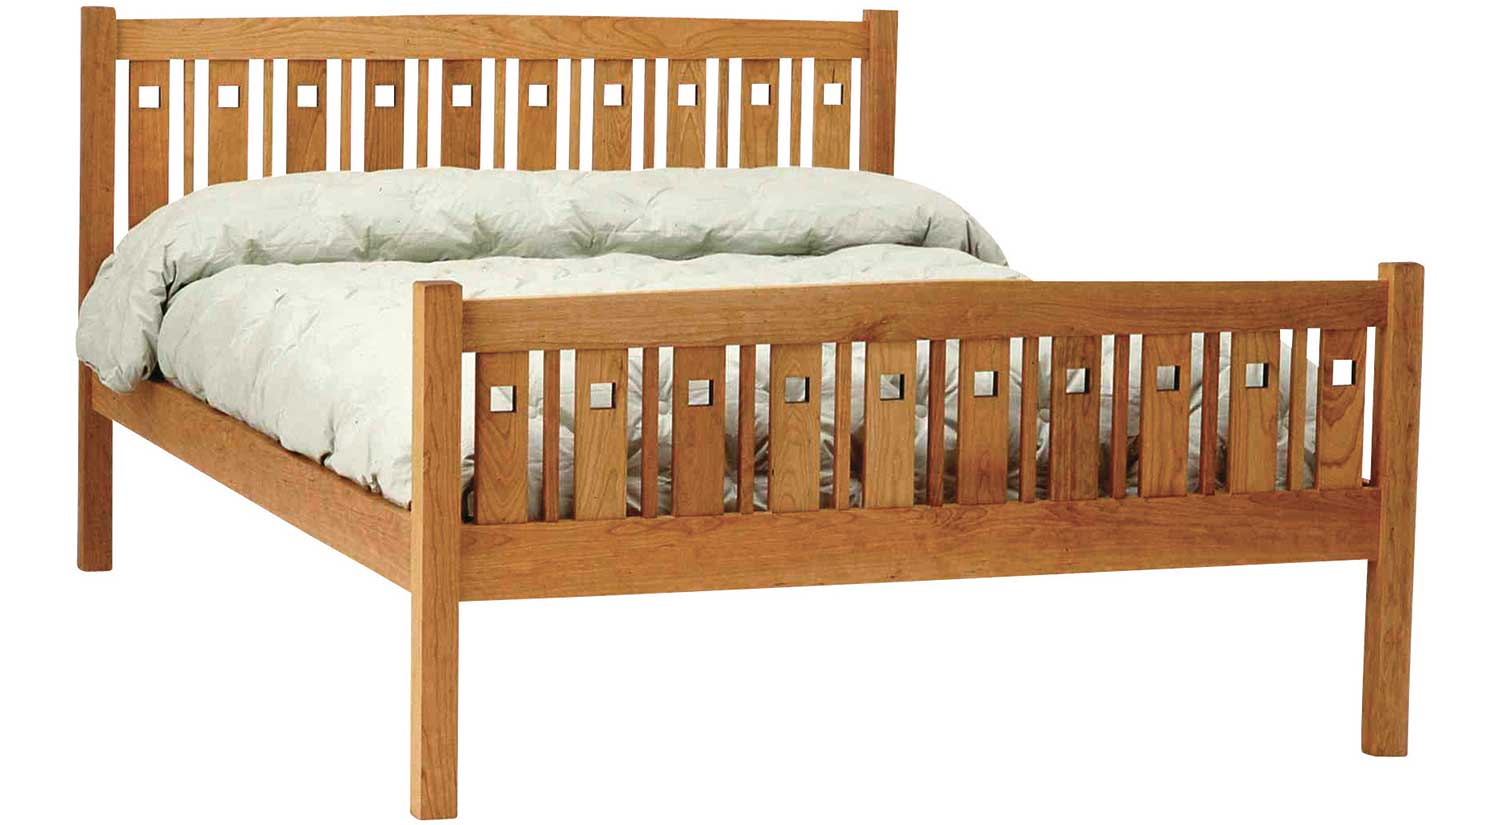 Circle Furniture - Macintosh Bed | Solid Maple Beds Boston